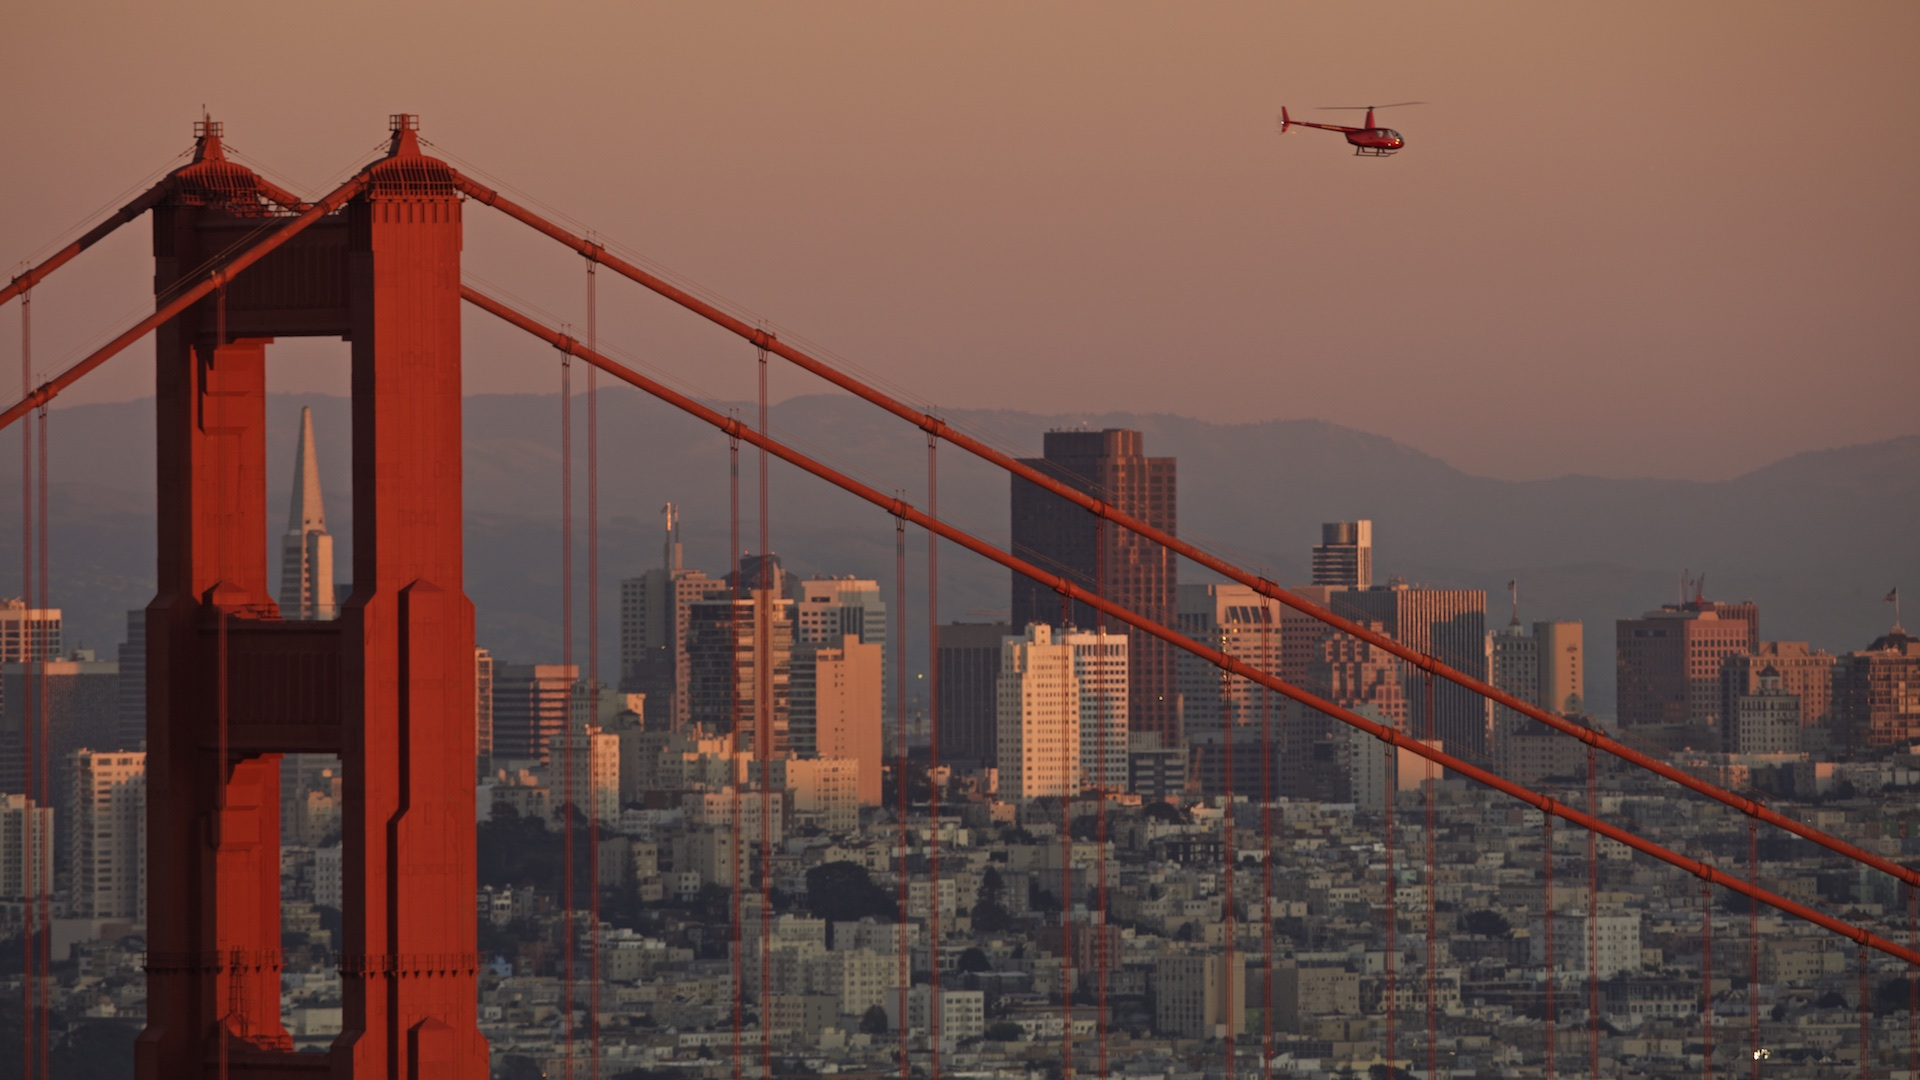 Robinson Helicopter and Golden Gate Bridge